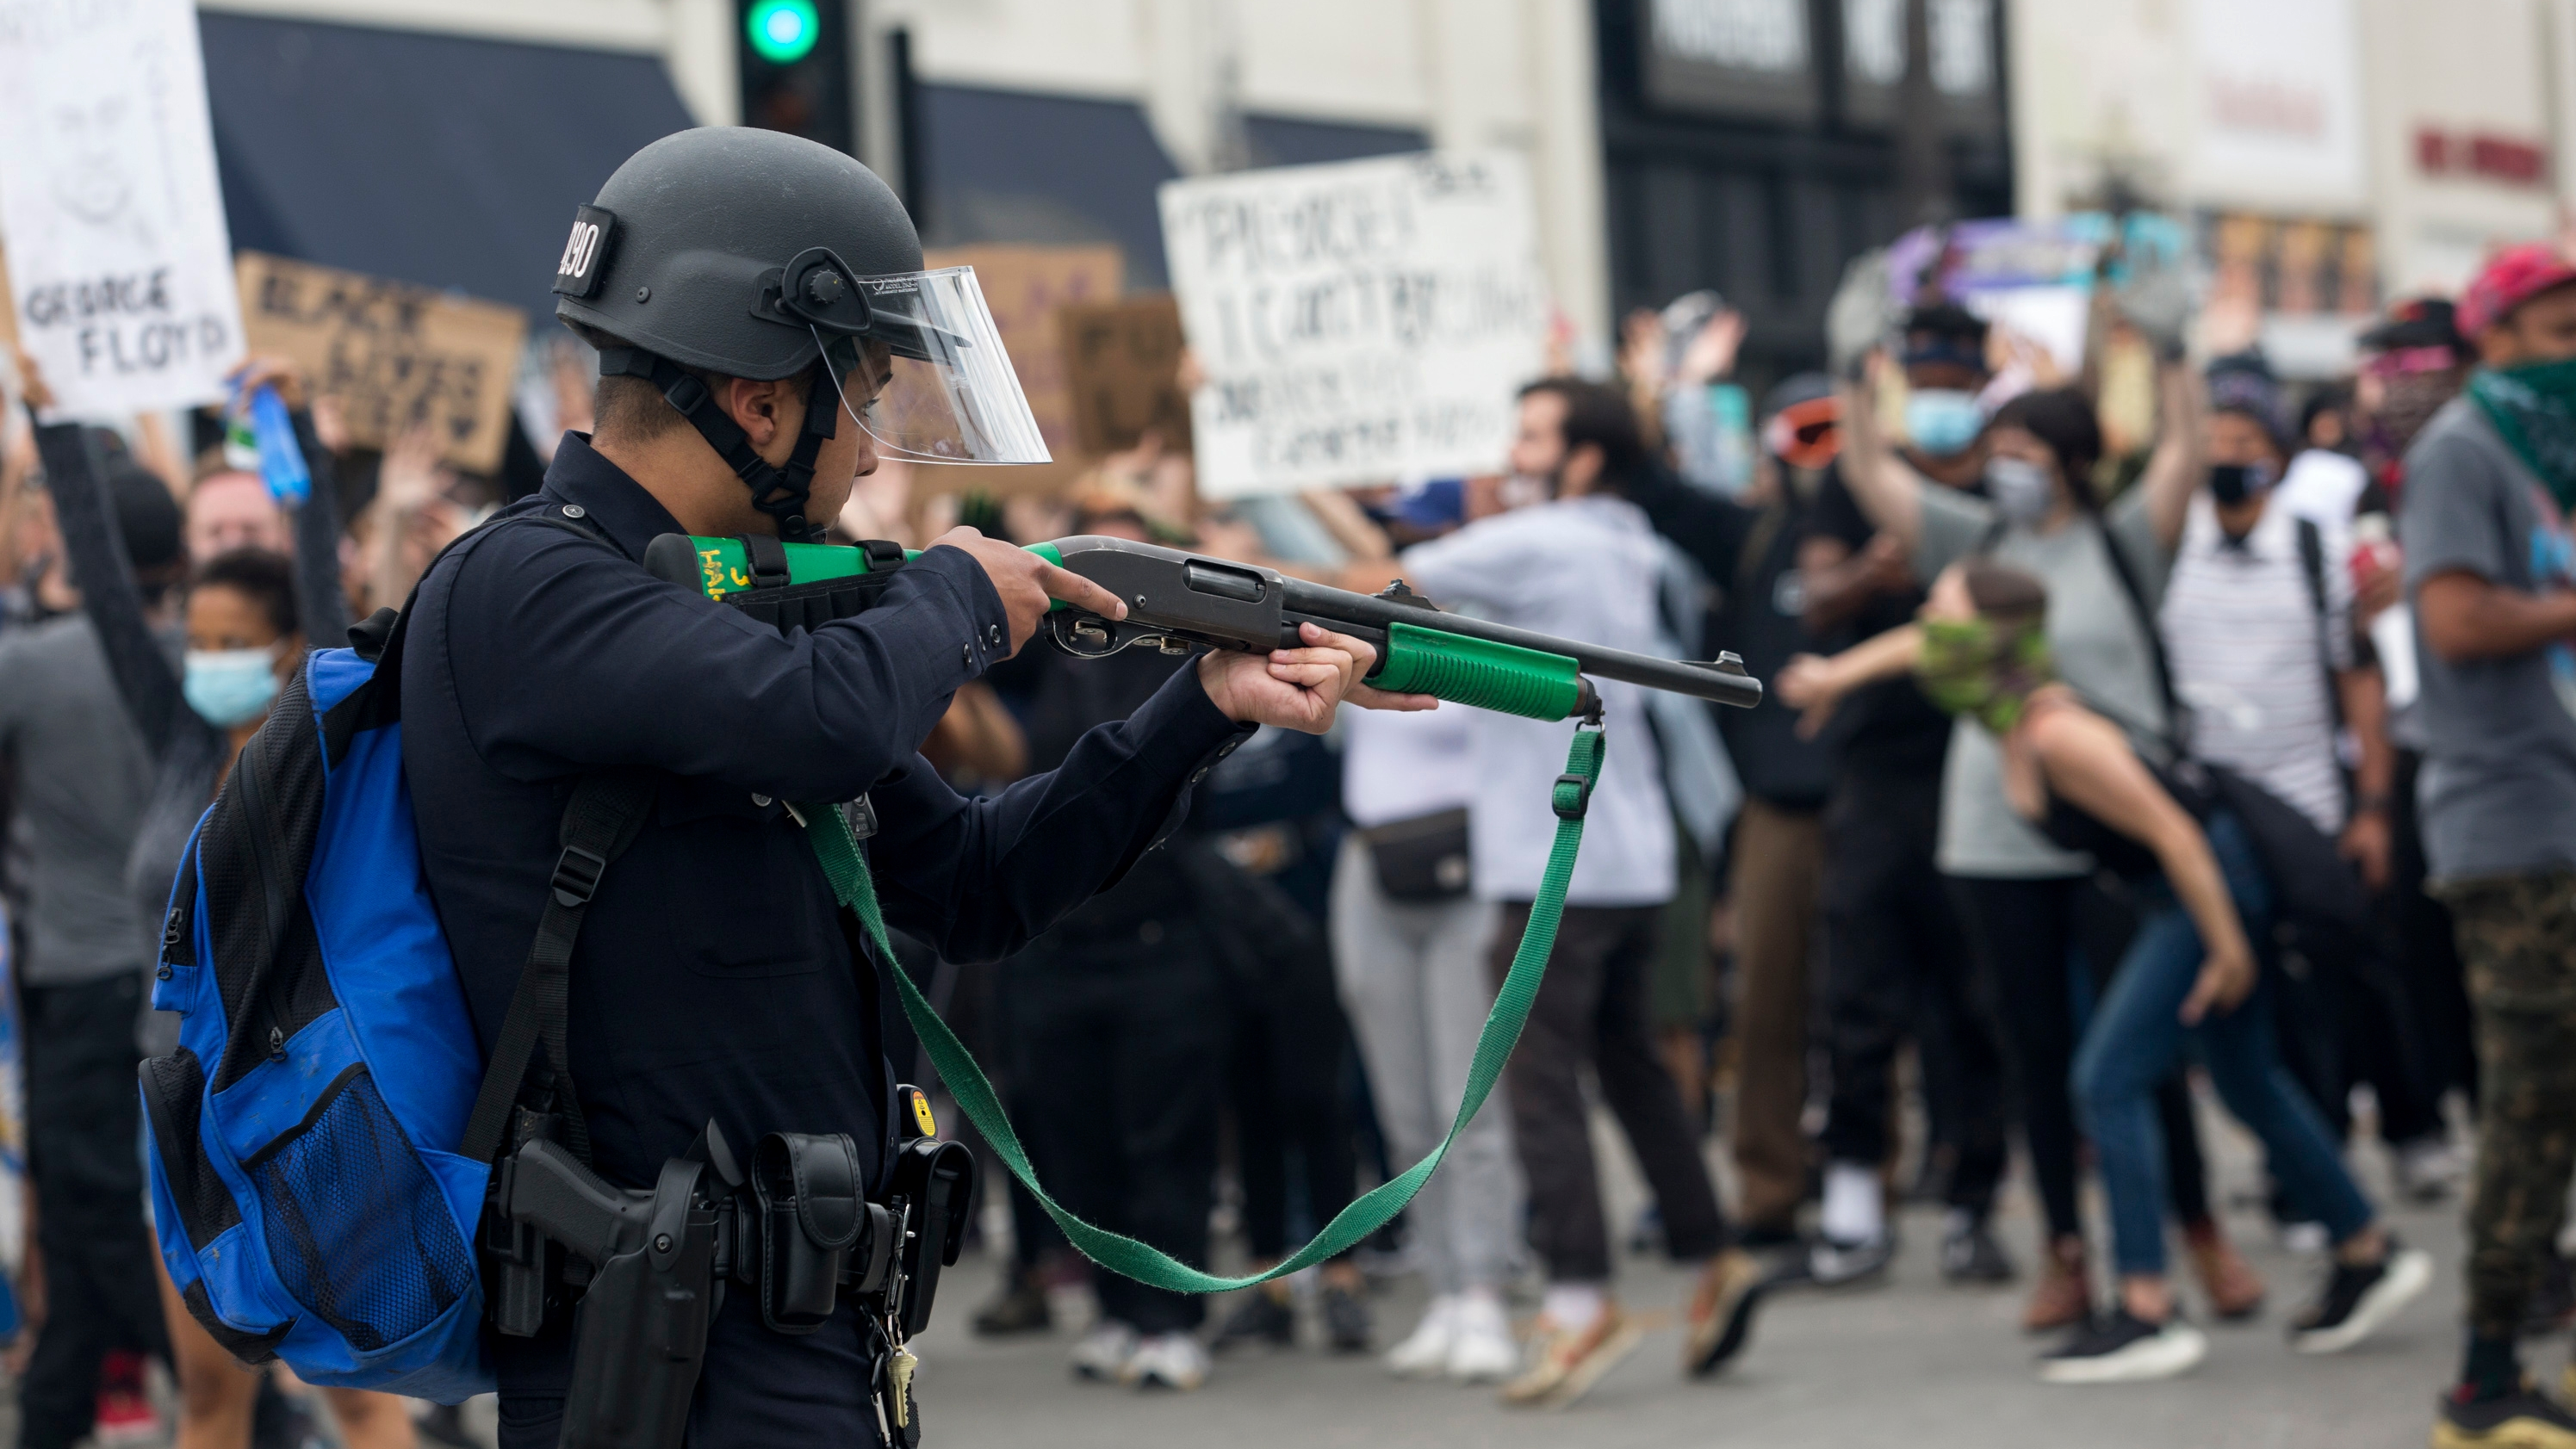 A Los Angeles police officer prepares to fire rubber bullets on Saturday, May 30, 2020, during a protest over the death of George Floyd, who died while handcuffed in police custody in Minneapolis on Monday, May 25. [RINGO H.W. CHIU | AP]